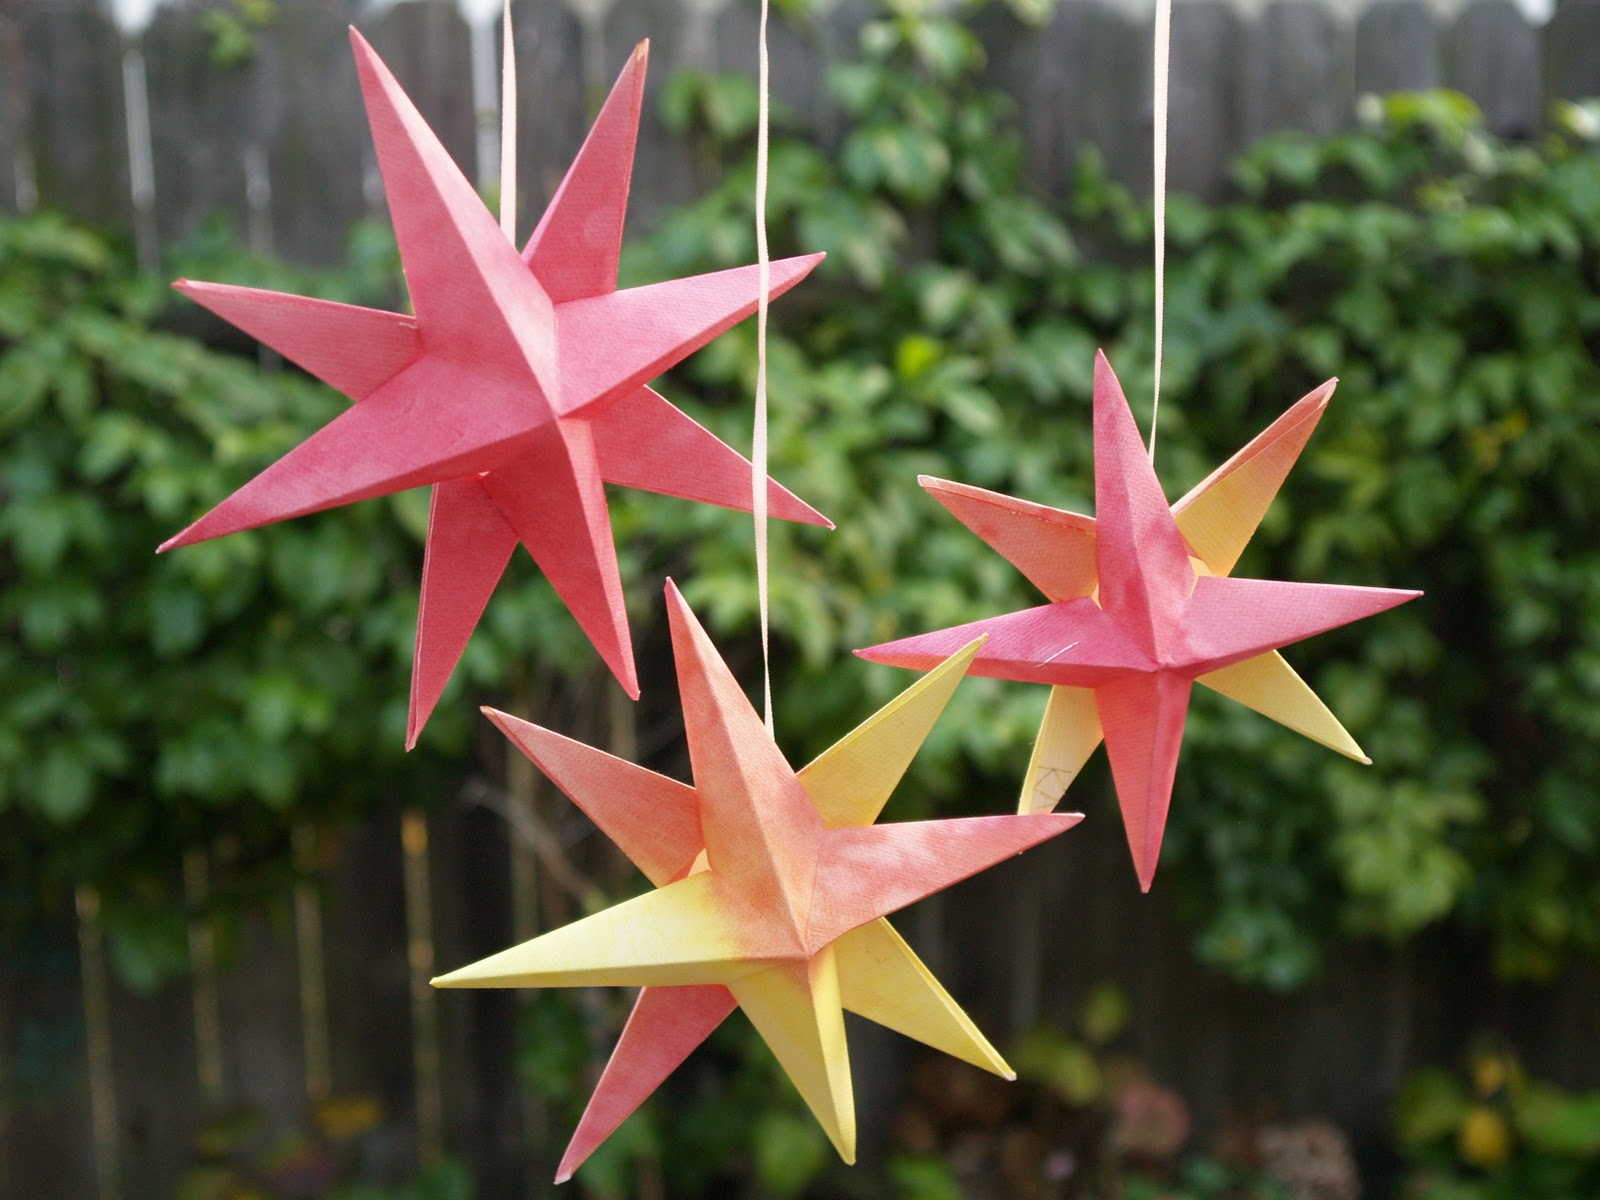 Folded Paper Christmas Origami Stars - The Magic Onions